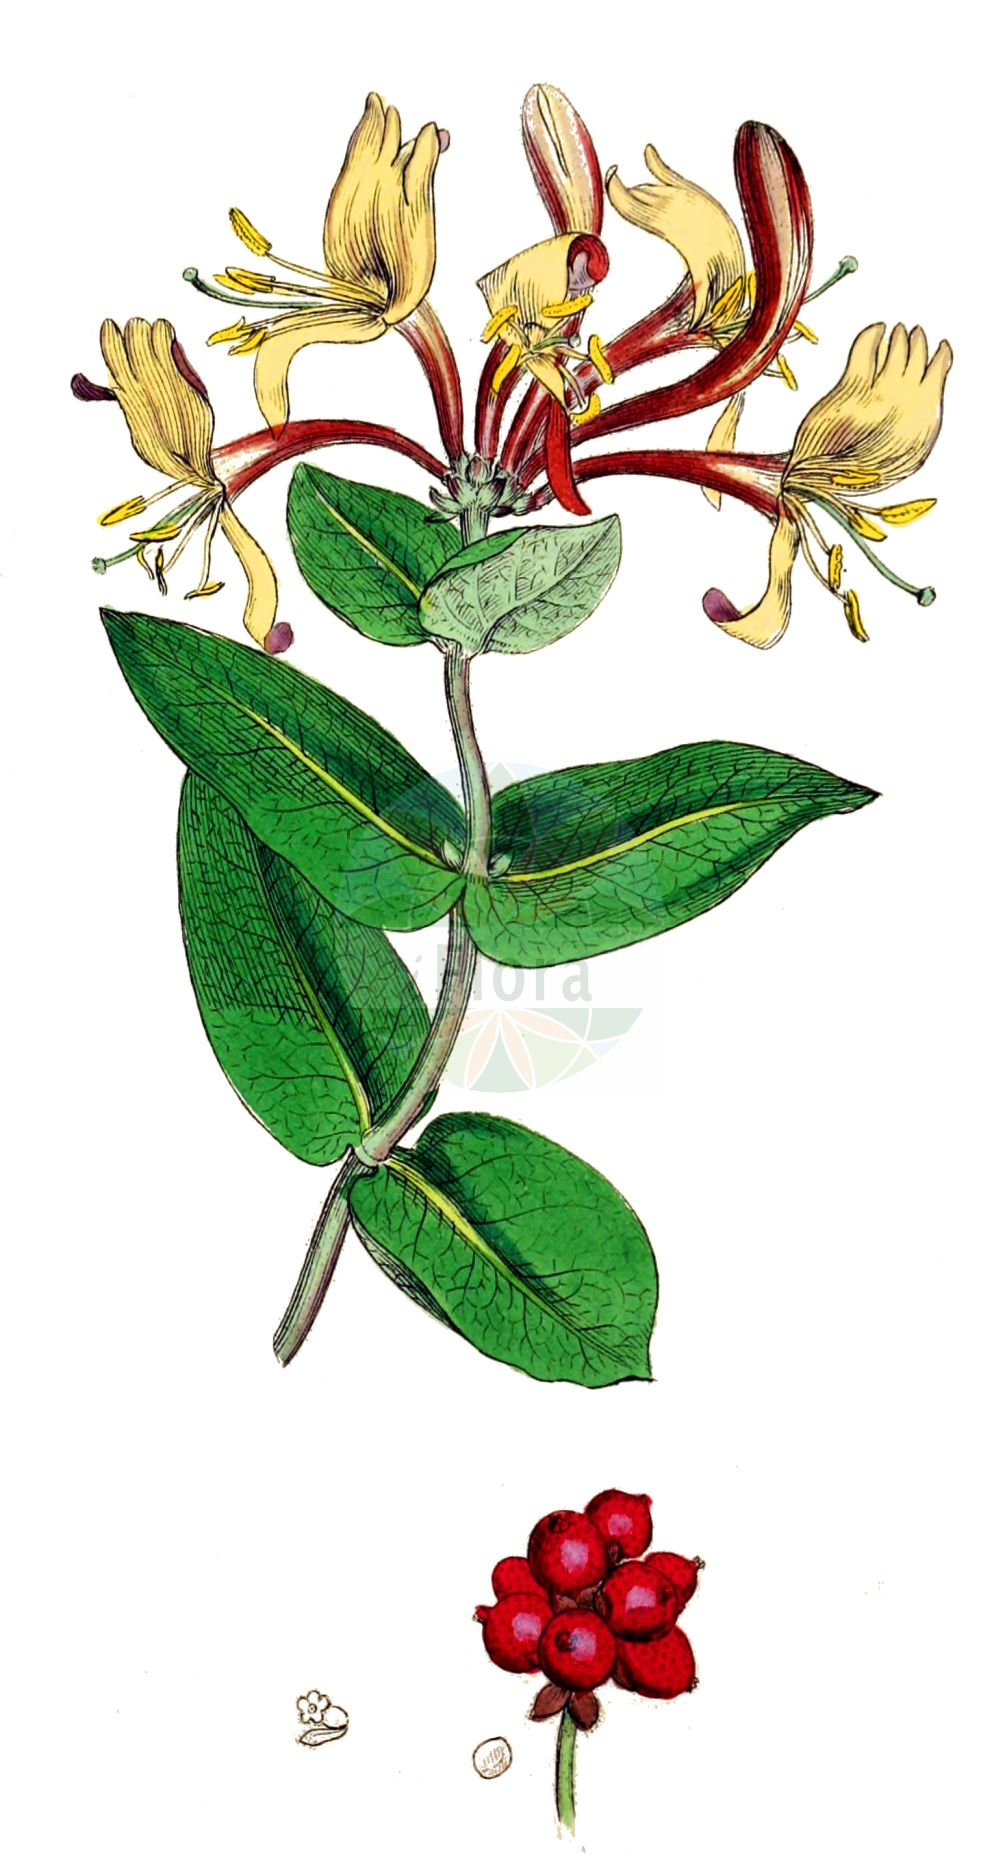 Historische Abbildung von Lonicera periclymenum (Wald-Heckenkirsche - Honeysuckle). Das Bild zeigt Blatt, Bluete, Frucht und Same. ---- Historical Drawing of Lonicera periclymenum (Wald-Heckenkirsche - Honeysuckle).The image is showing leaf, flower, fruit and seed.(Lonicera periclymenum,Wald-Heckenkirsche,Honeysuckle,Lonicera periclymenum,Lonicera serotina,Wald-Heckenkirsche,Deutsche Heckenkirsche,Wald-Geissblatt,Honeysuckle,Common Honeysuckle,European Honeysuckle,Duck Honeysuckle,Woodbine,Lonicera,Heckenkirsche,Honeysuckle,Caprifoliaceae,Geissblattgewaechse,Honeysuckle family,Blatt,Bluete,Frucht,Same,leaf,flower,fruit,seed,Sowerby (1790-1813))